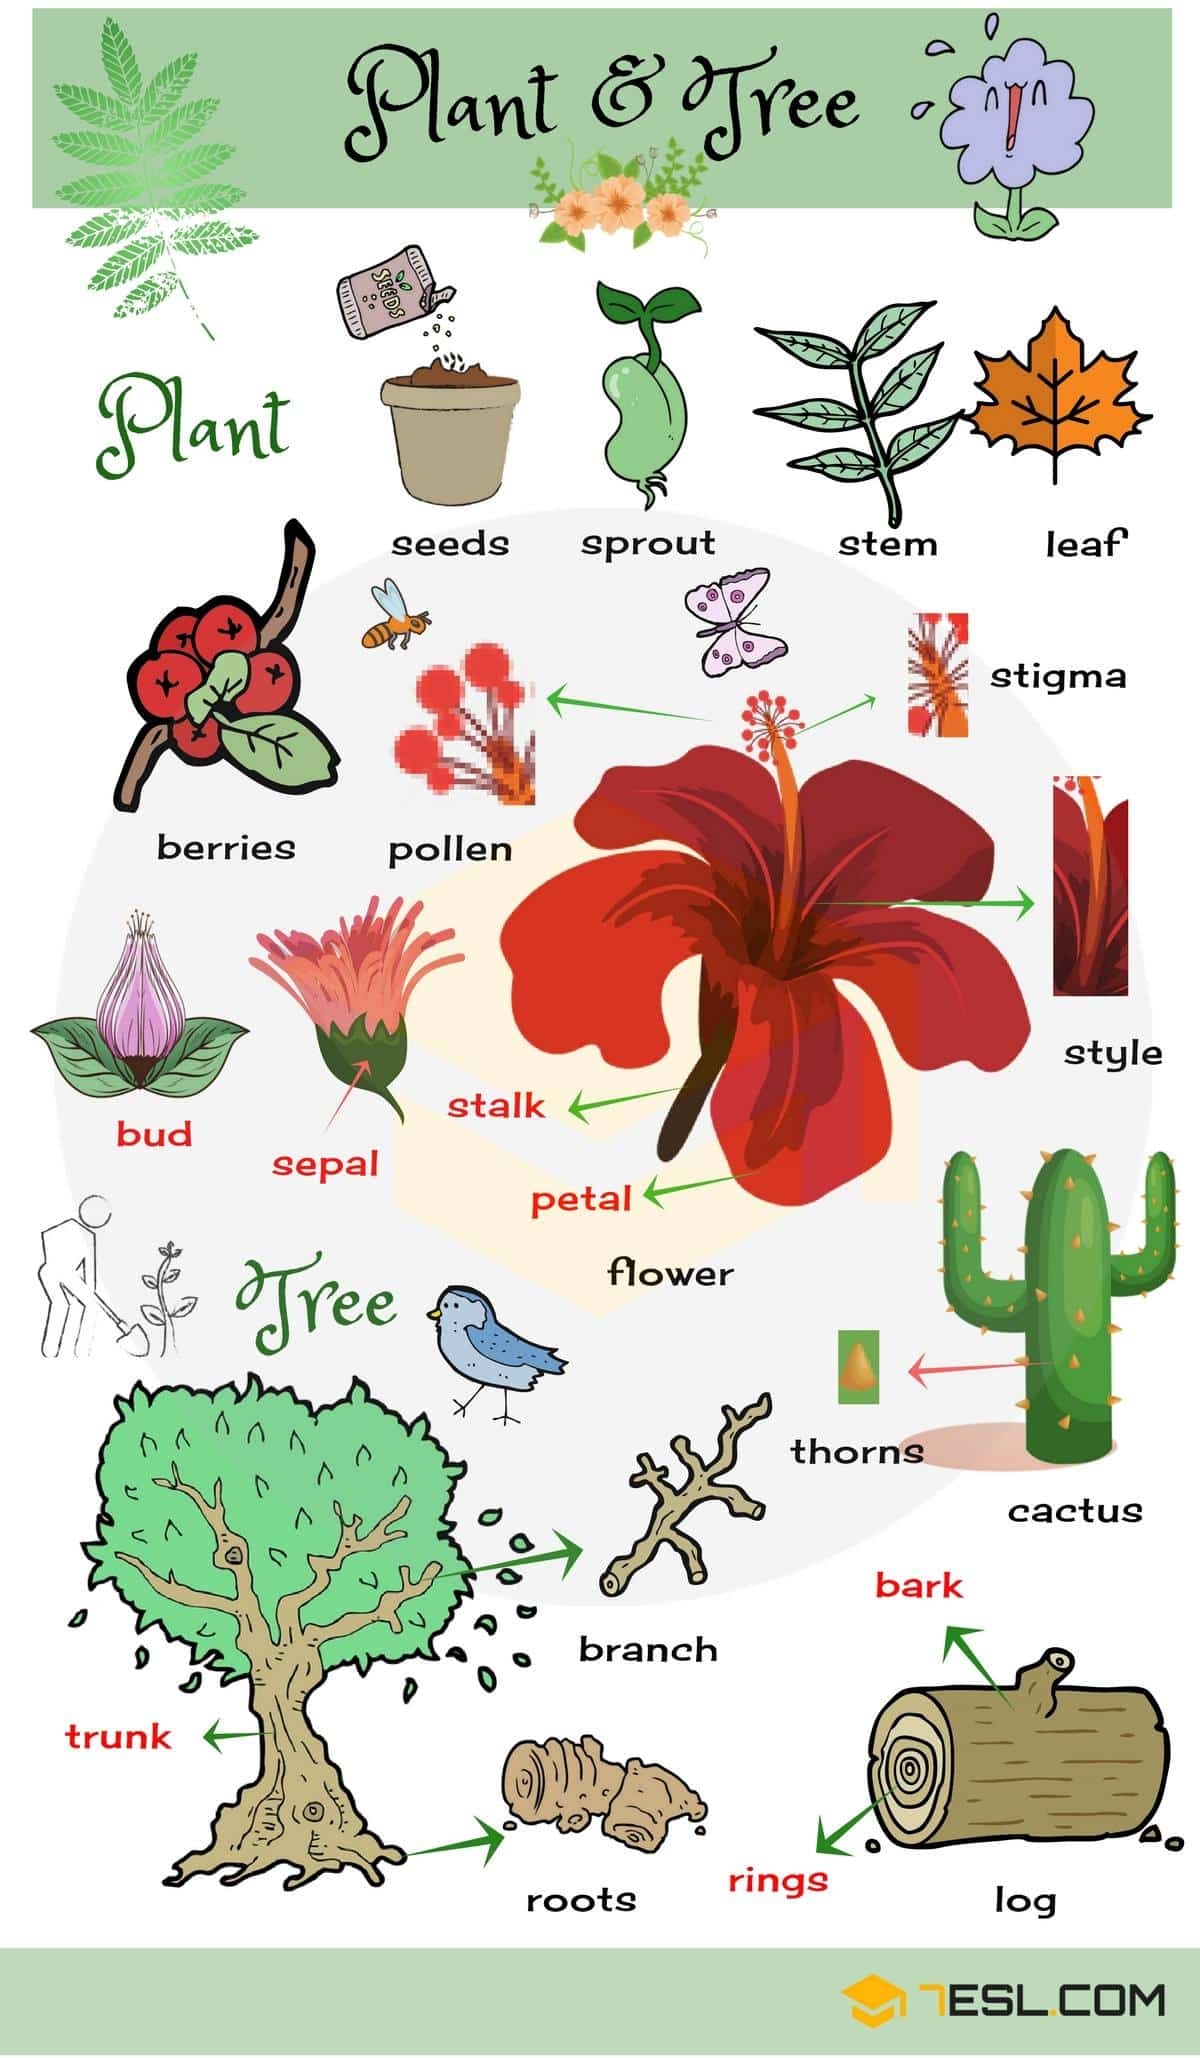 Plants and Trees Vocabulary